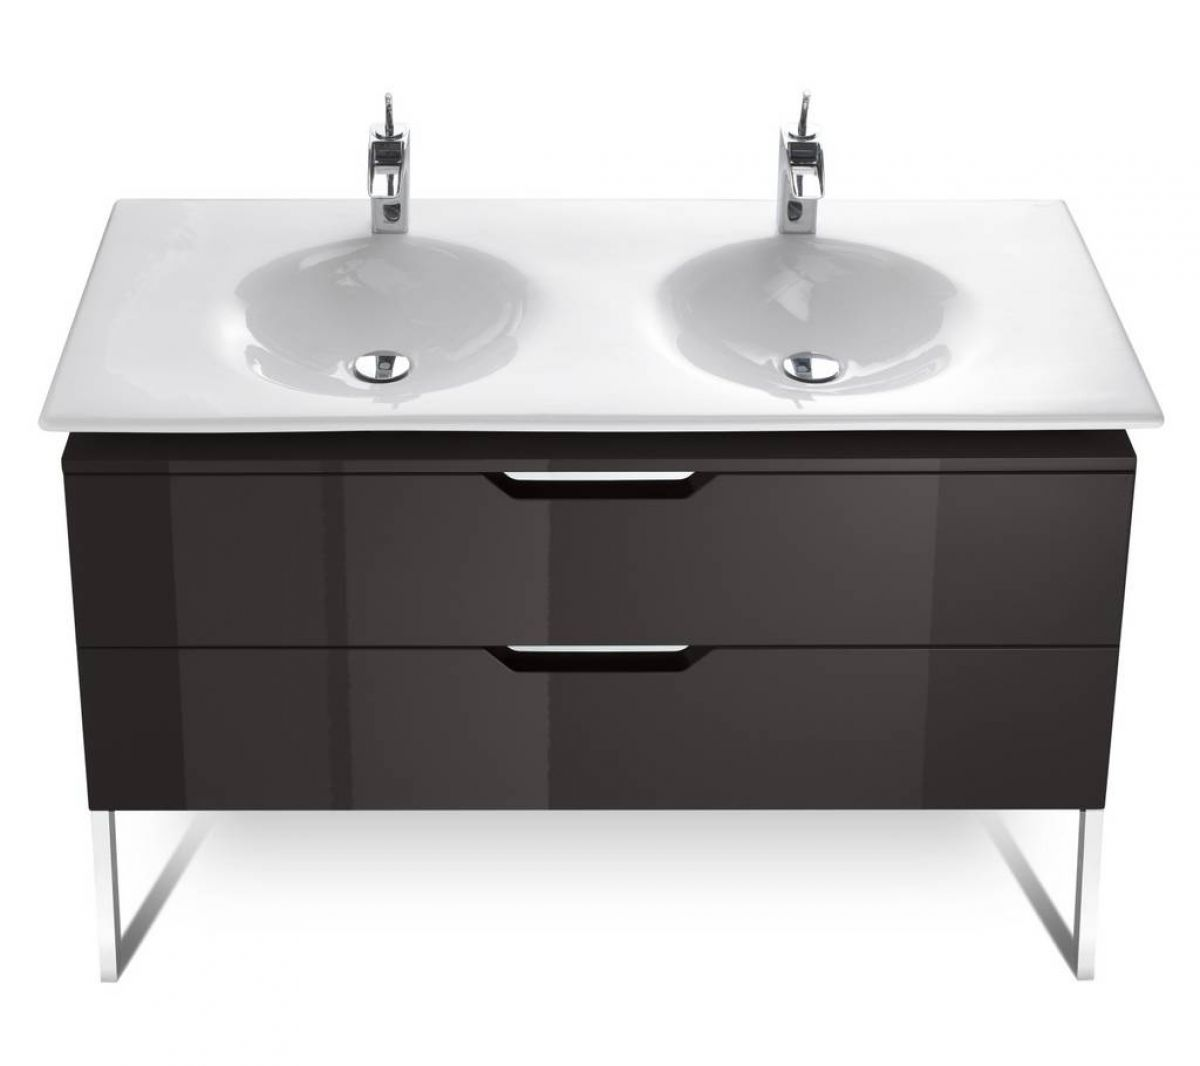 Roca kalahari 1200mm double basin furniture unit uk for Roca kalahari